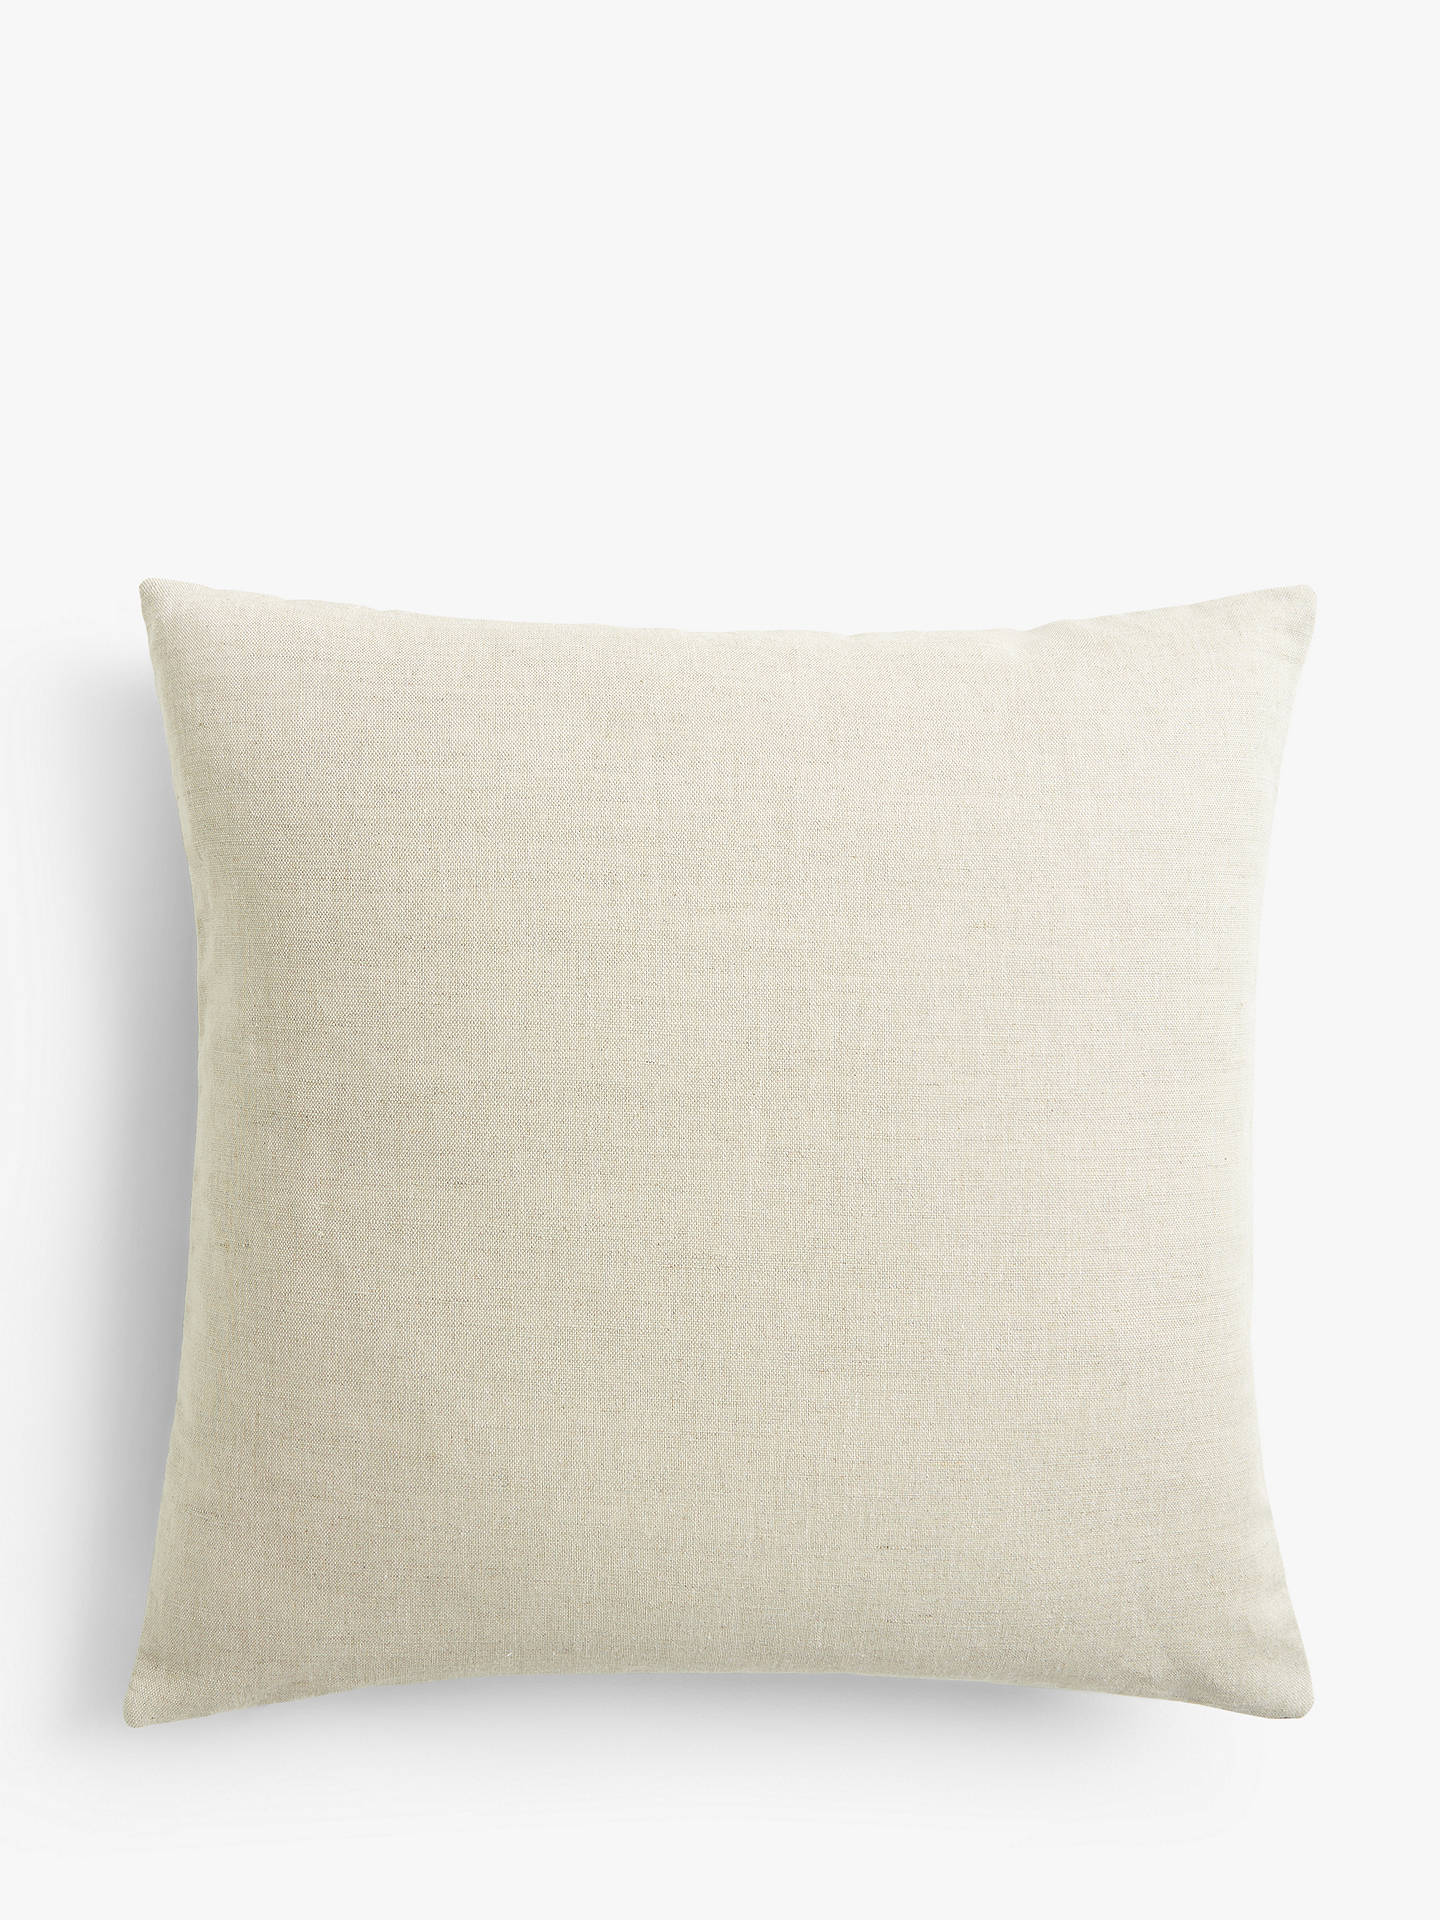 Buy Morris & Co. Marigold Cushion, Navy / Burnt Orange Online at johnlewis.com